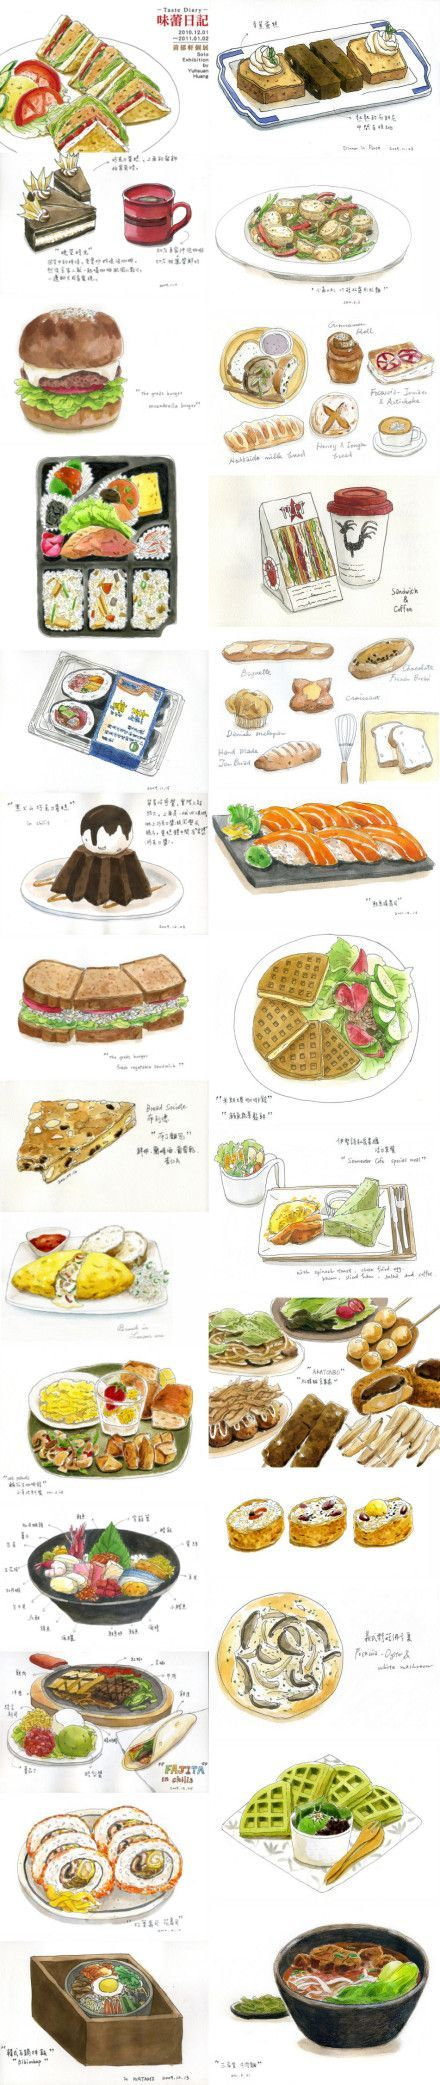 Food illustration - artist study , How to Draw Food, Artist Study Resources for Art Students, CAPI ::: Create Art Portfolio Ideas at  , Inspiration for Art School Portfolio Work, Food, Drawing Food, Sketching, Painting, Art Journal, Journaling, illustration #school  #food #ideas #recipes